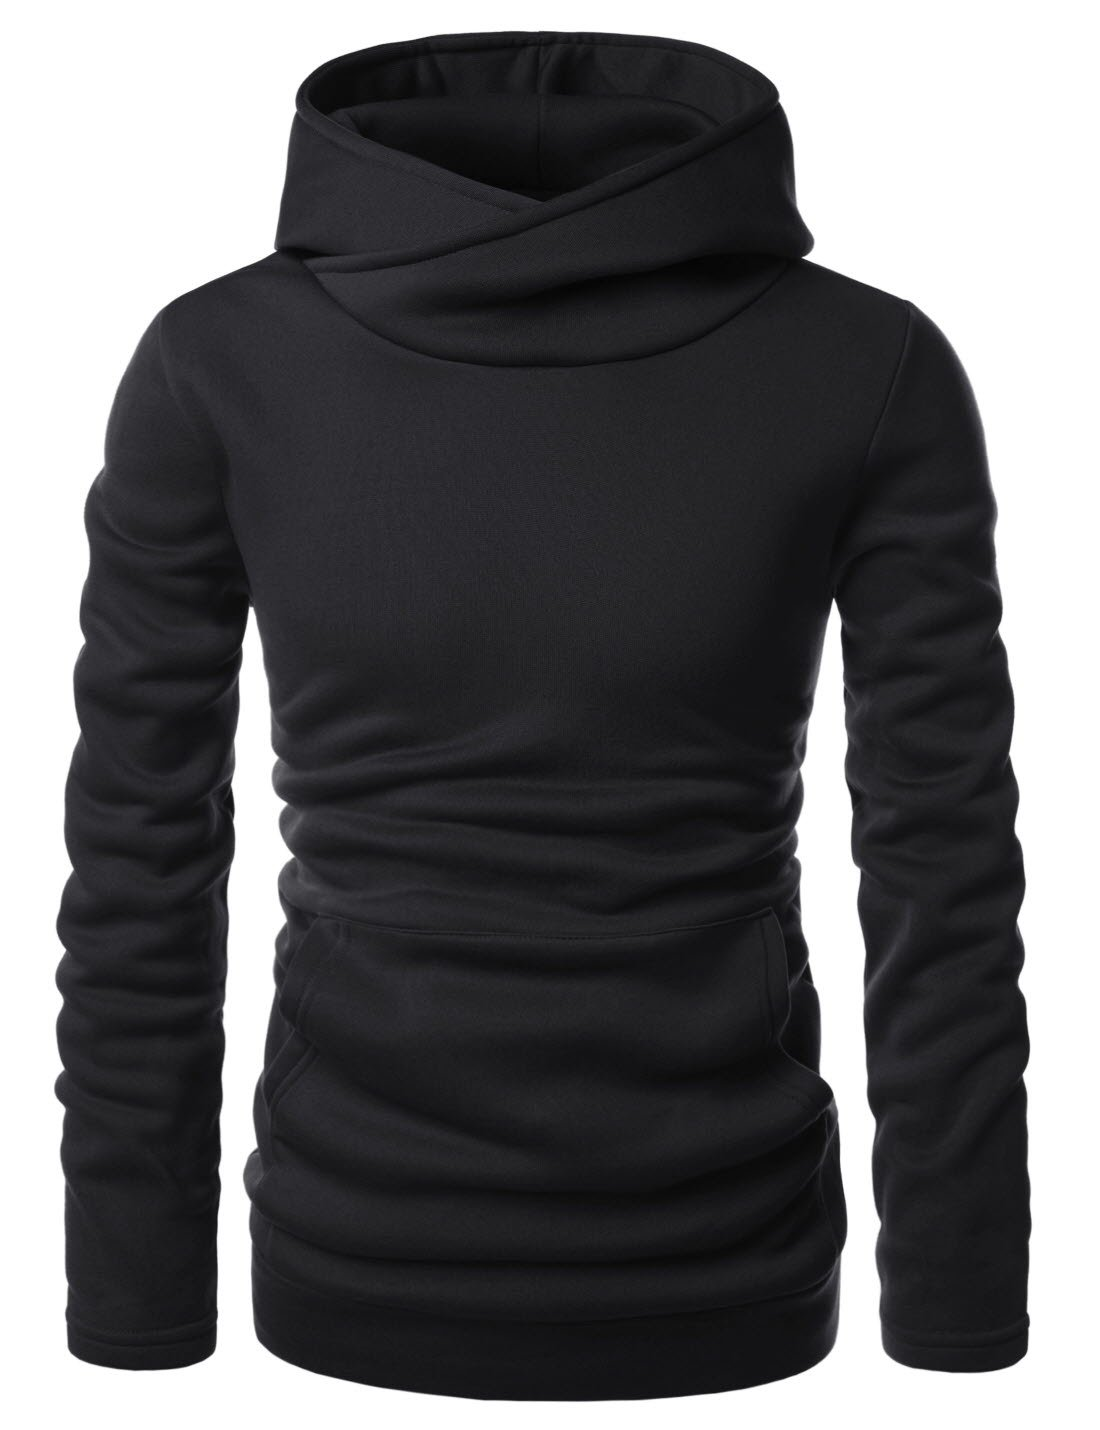 Showblanc (SBNKH510) Mens Stylish Pullover Funnel Collar Fleece Lined Hooded Sweatshirt BLACK US XL(Tag size XL)